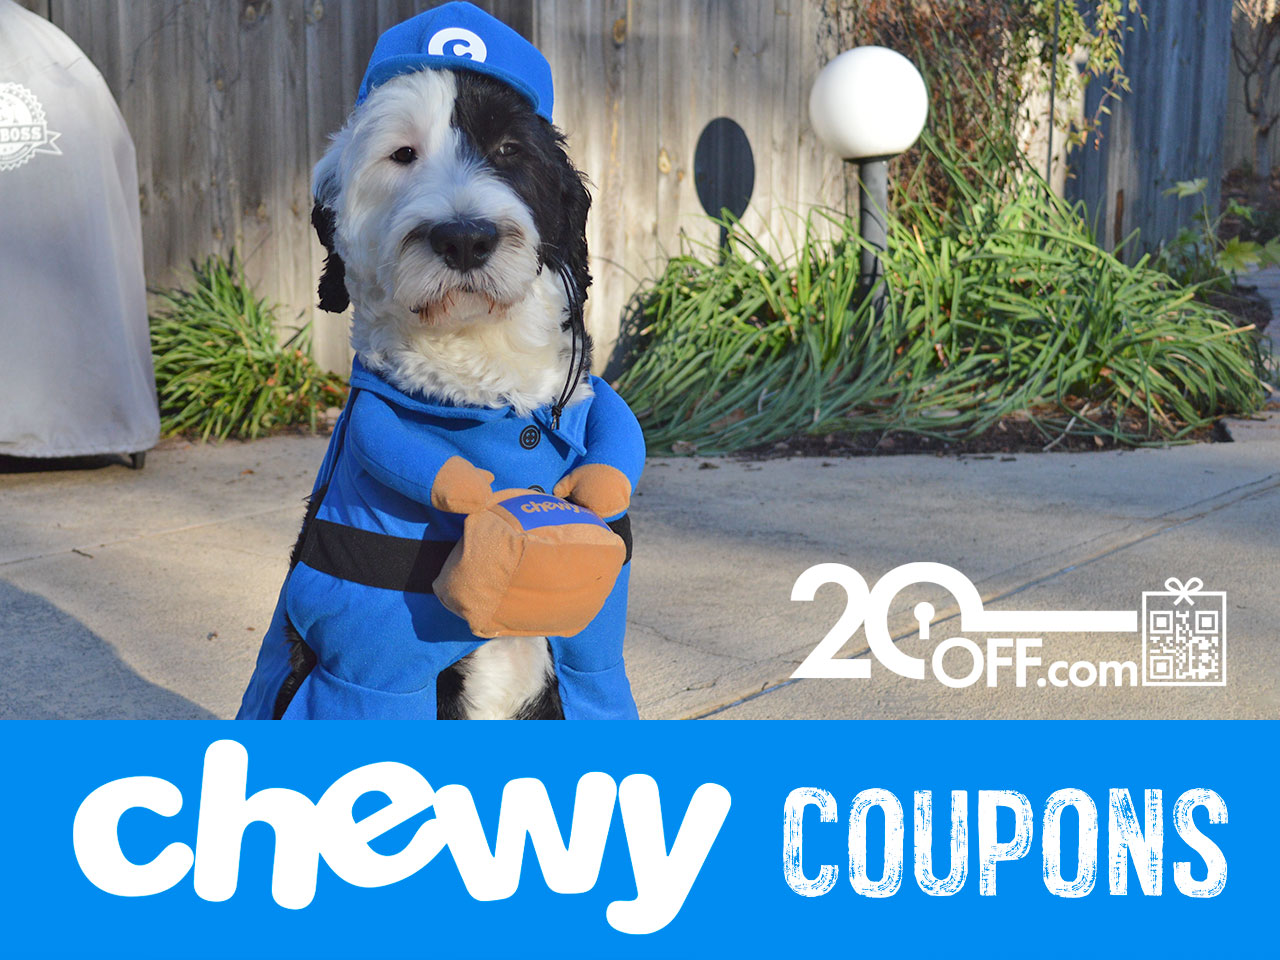 Chewy Dog Supplies Coupons